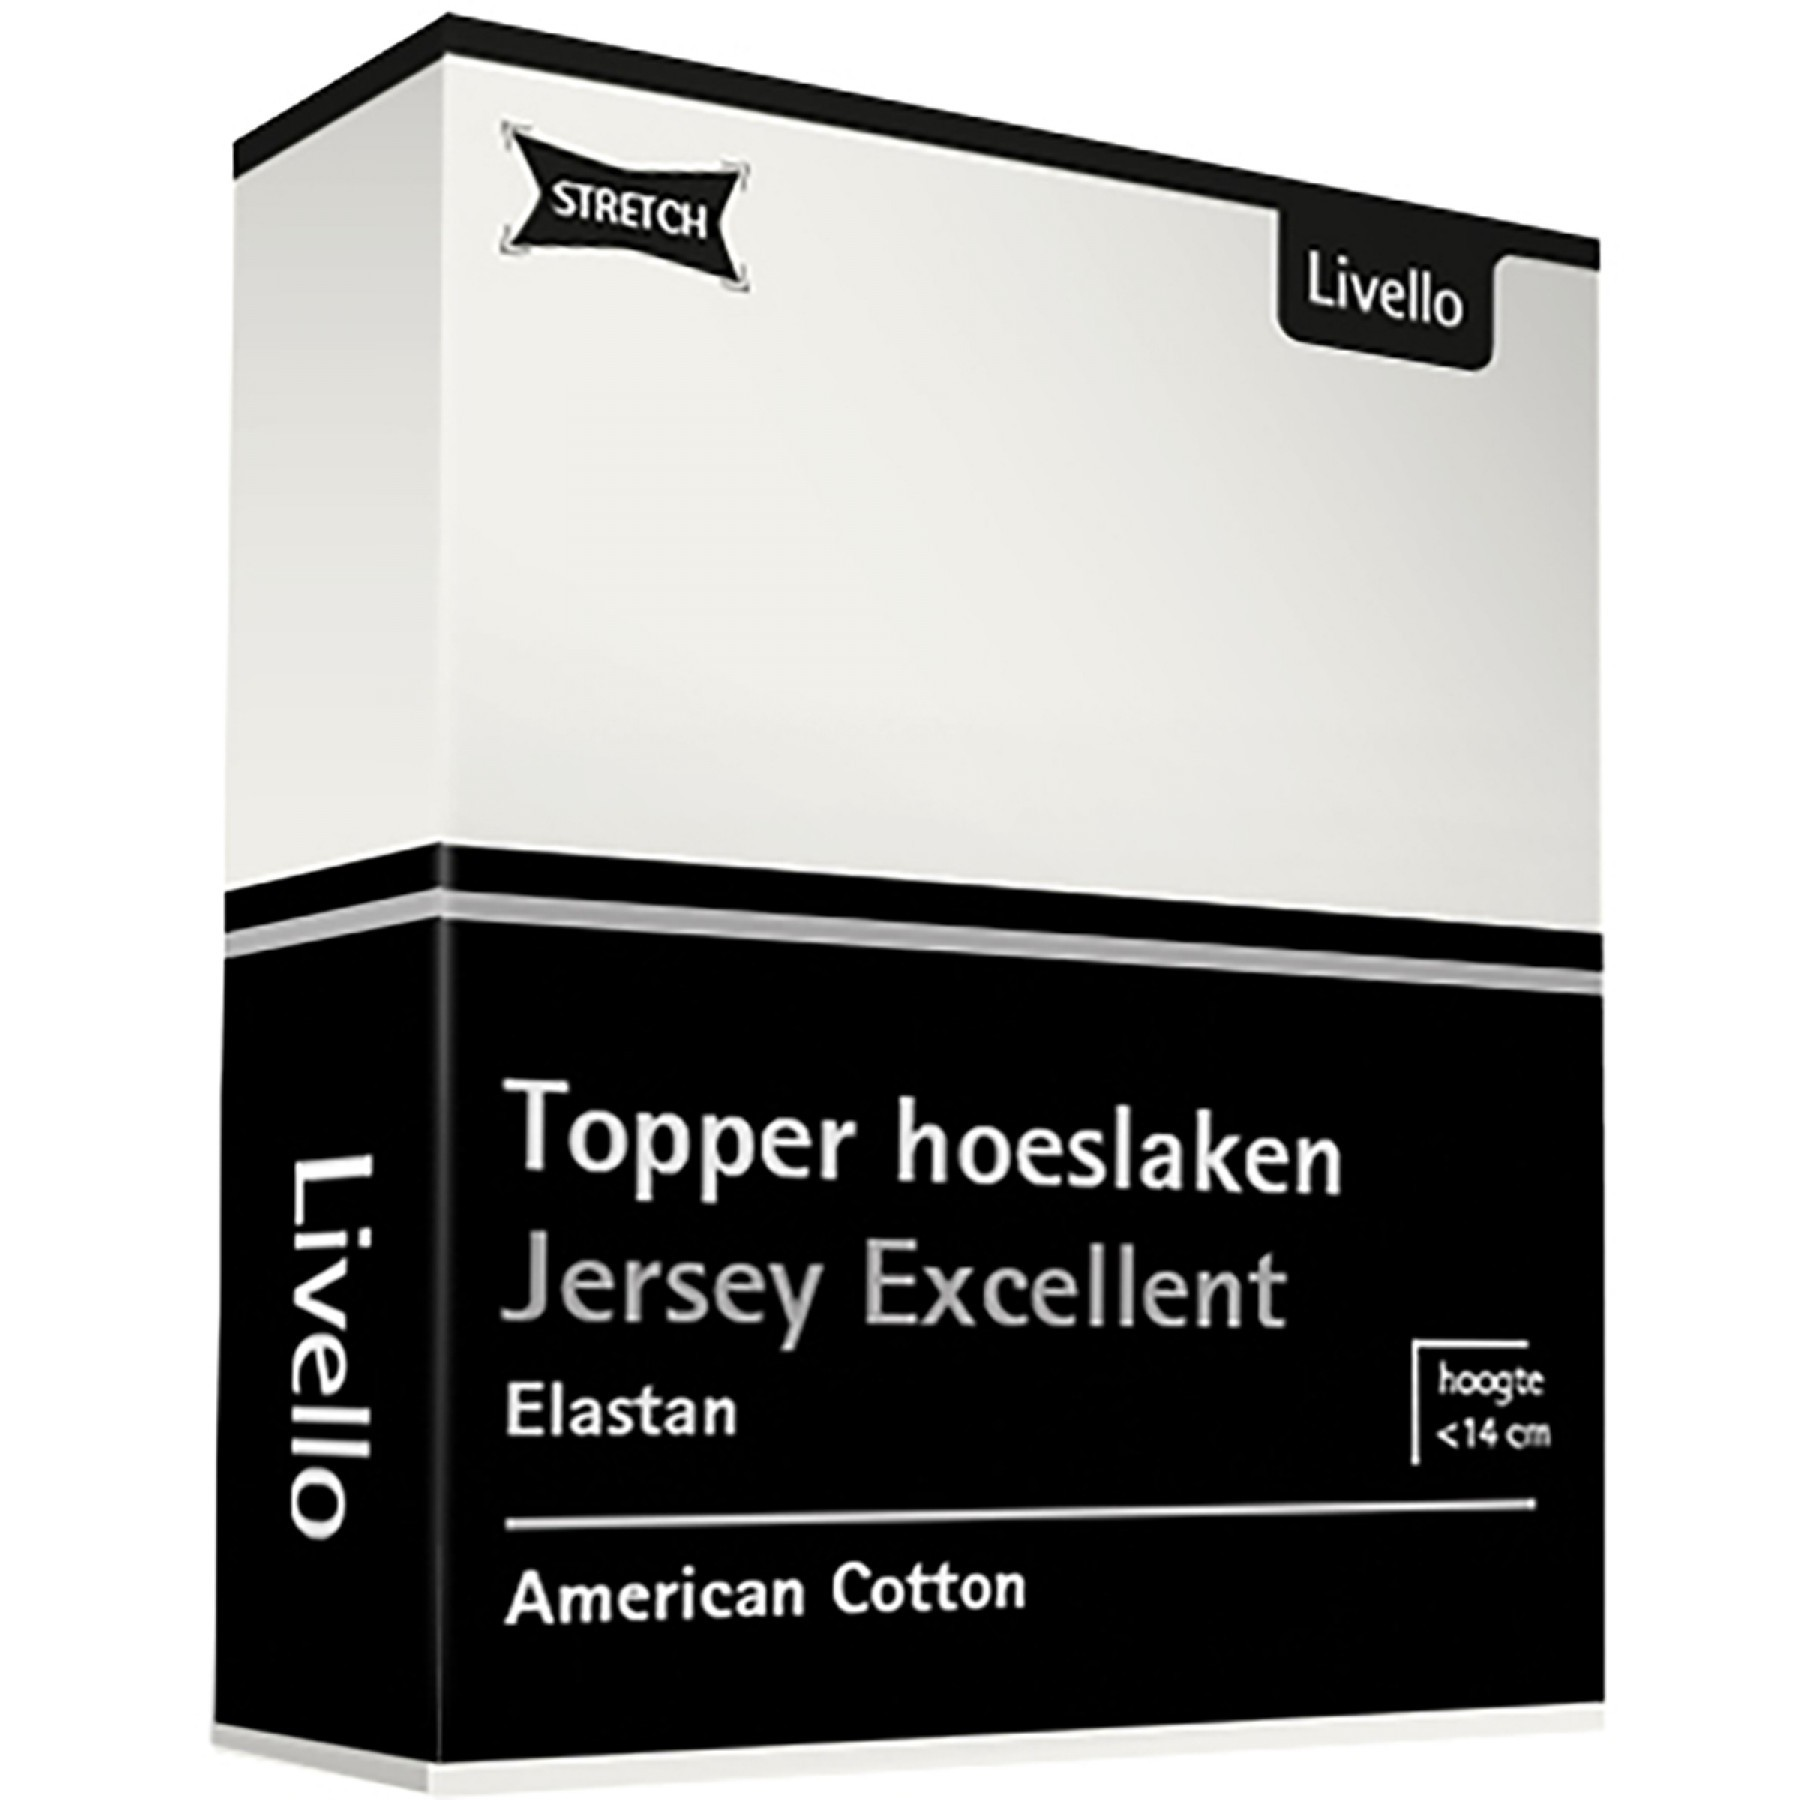 Livello Hoeslaken Topper Jersey Excellent Offwhite